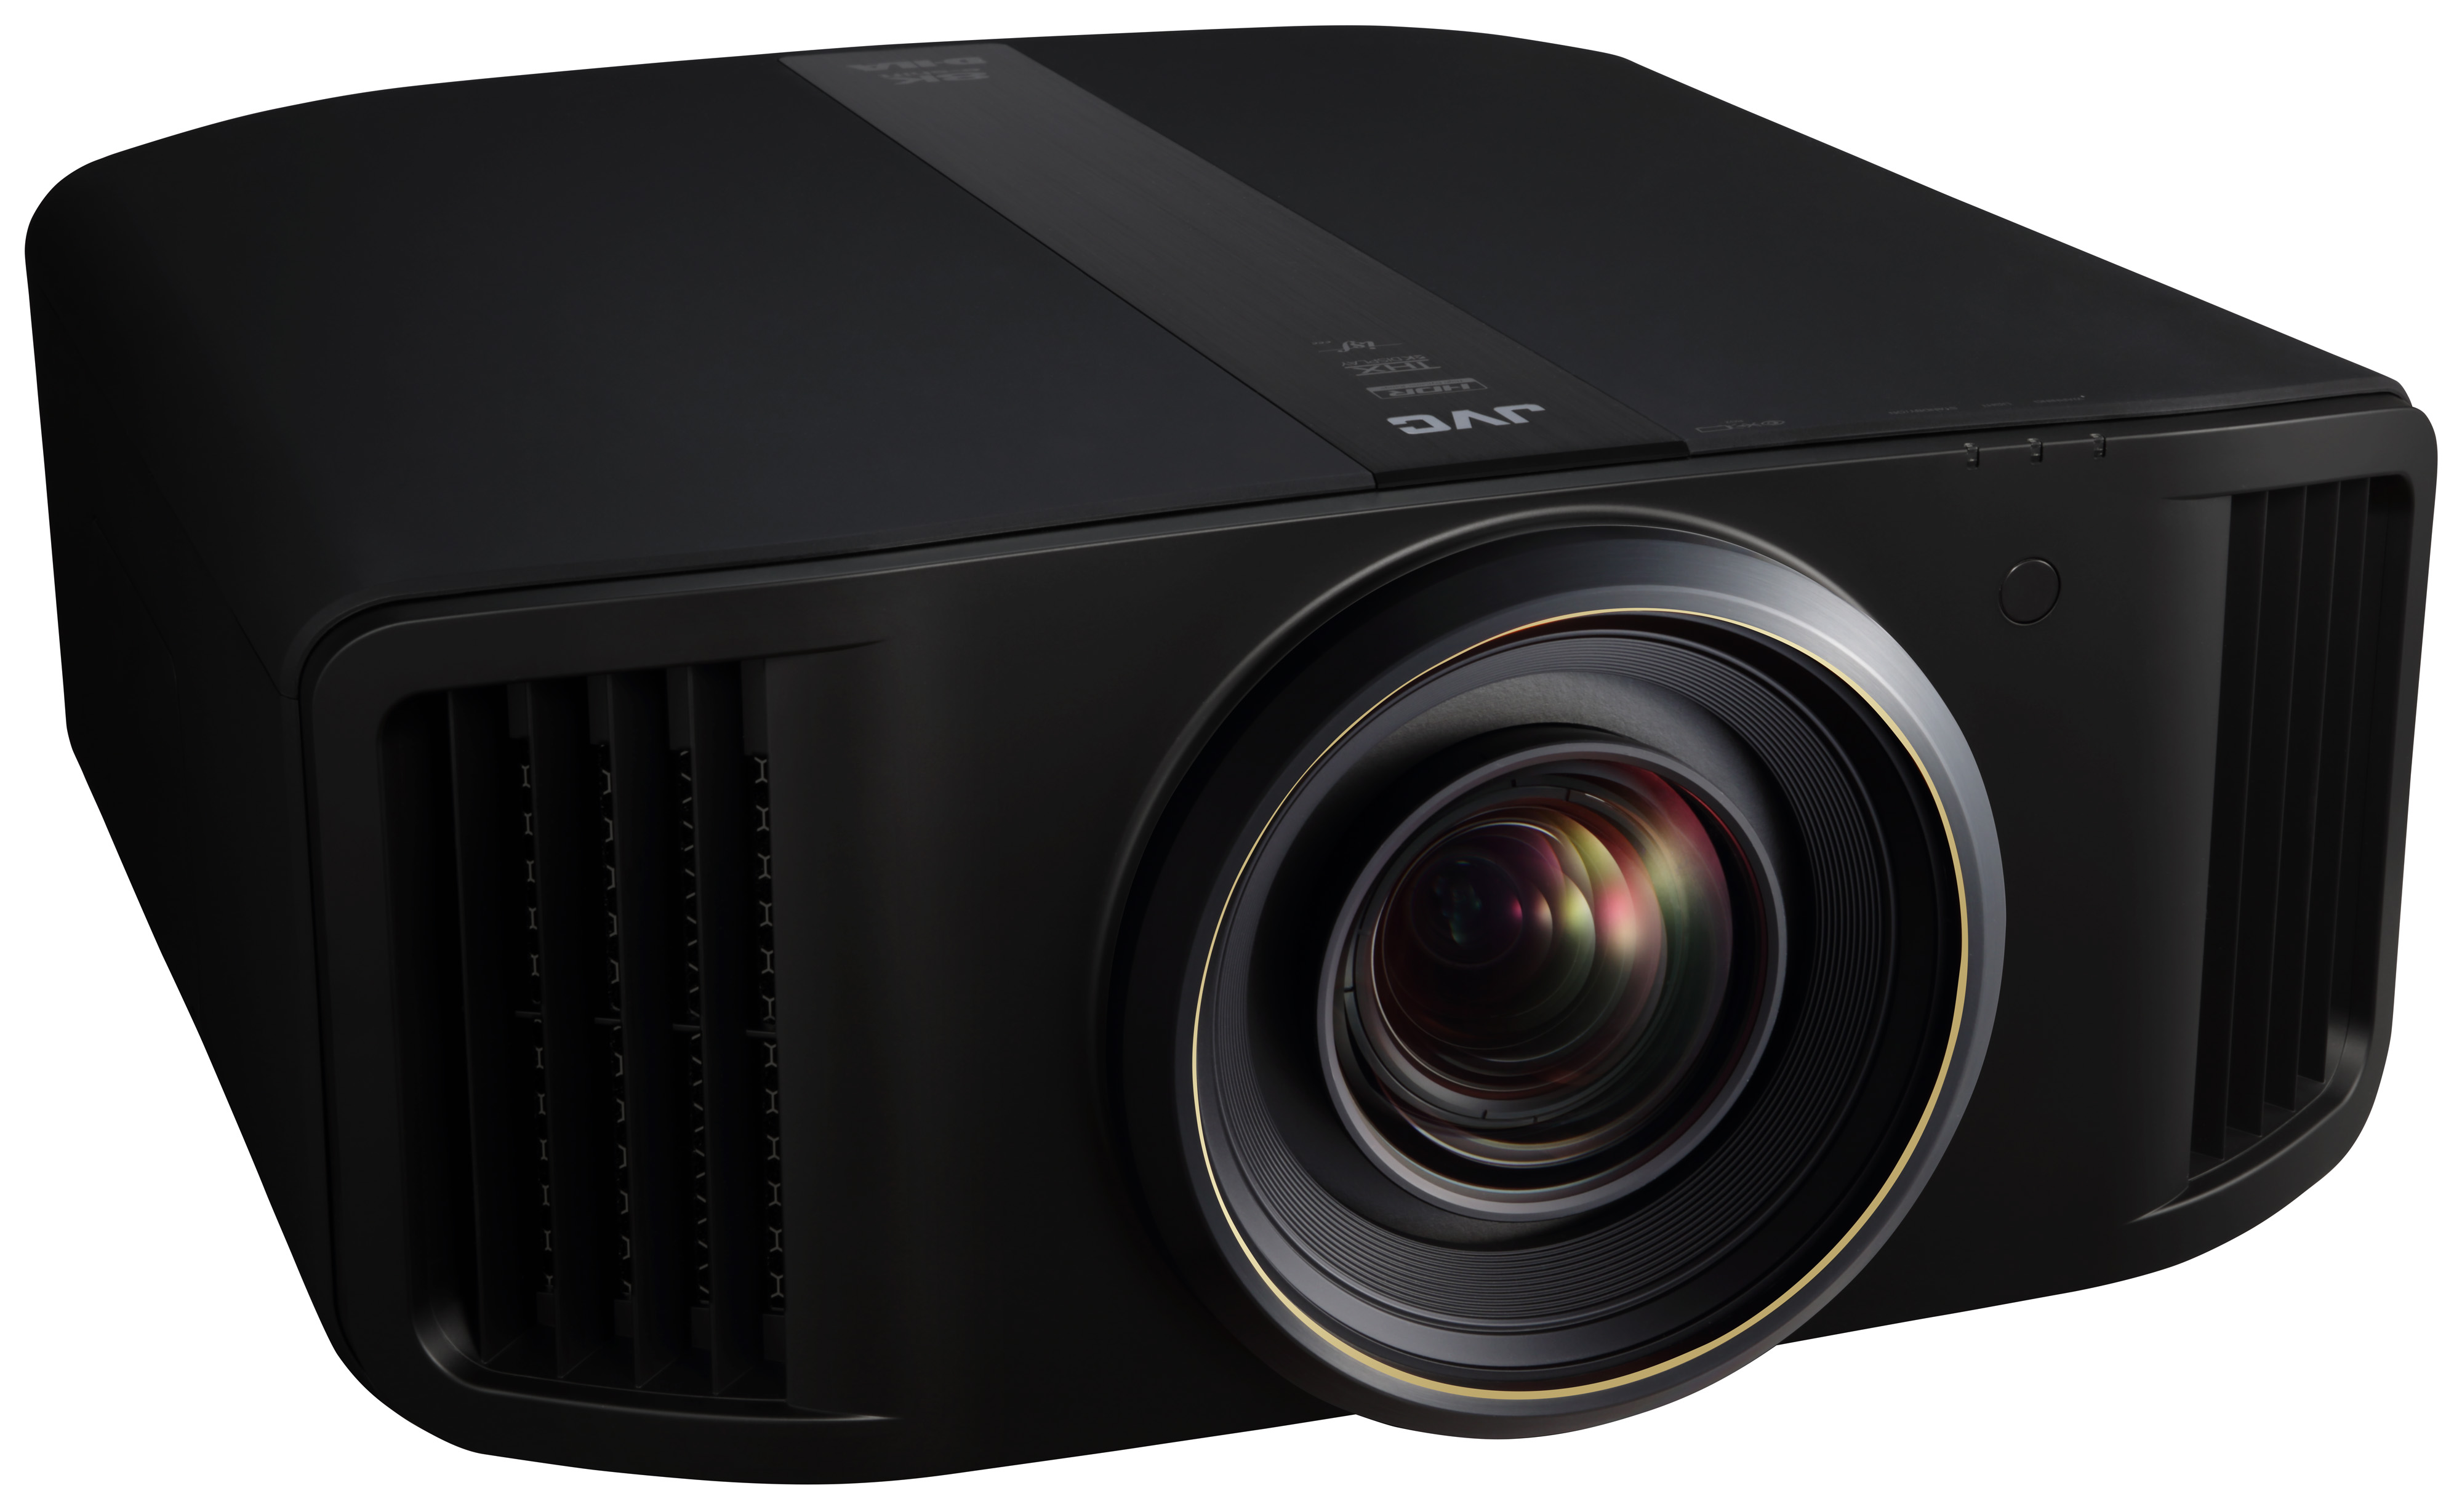 JVC introduces the world's first 8K home theatre projector, well